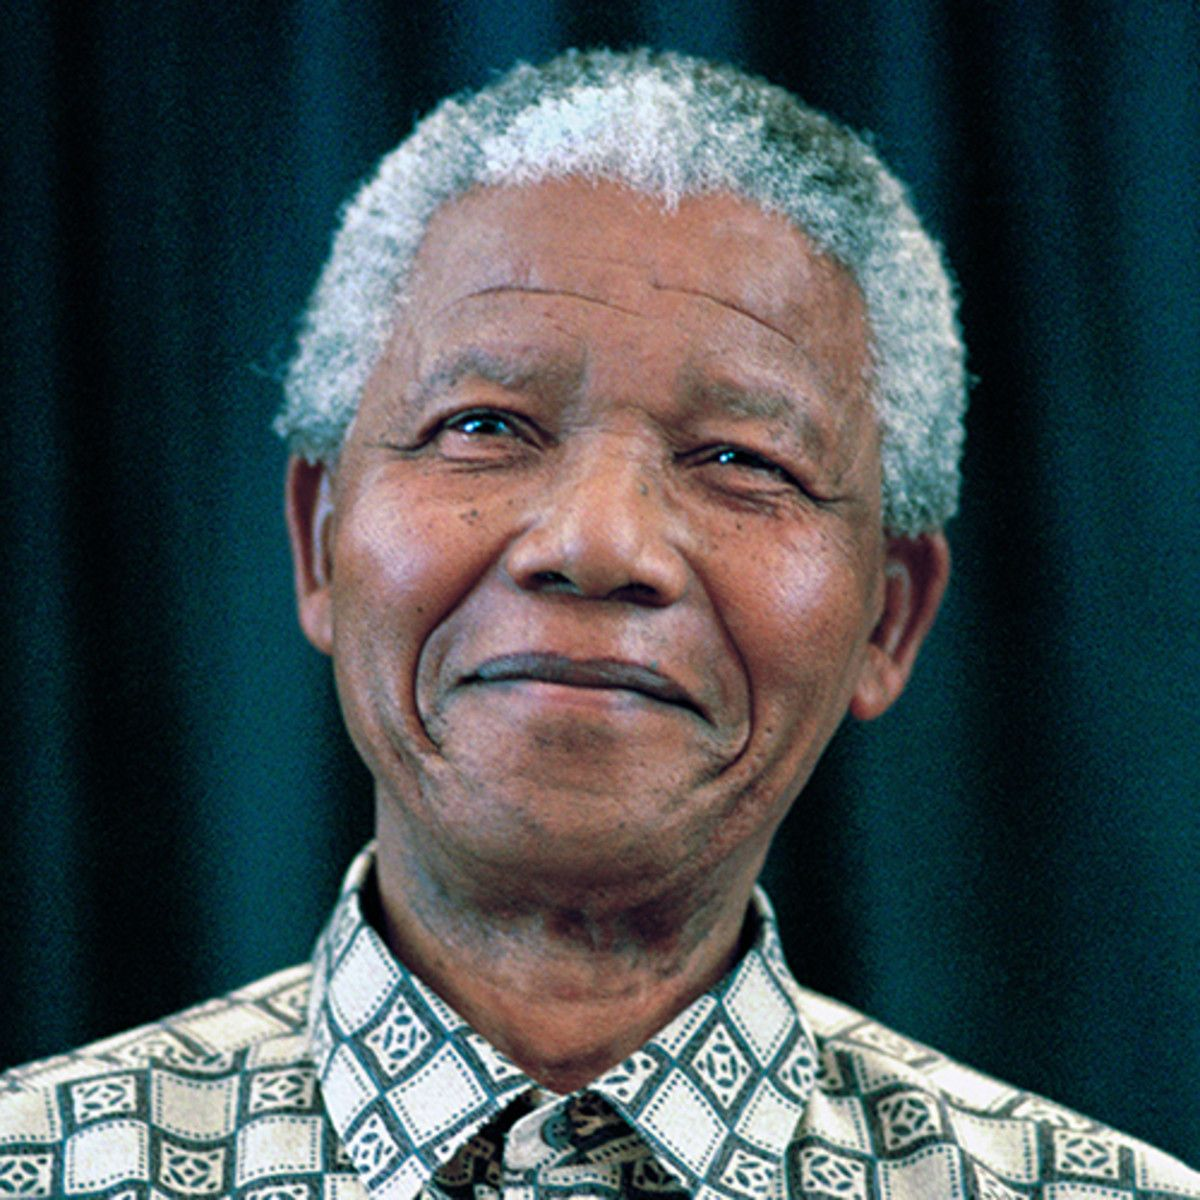 Nelson Mandela - Quotes, Facts & Death - Biography